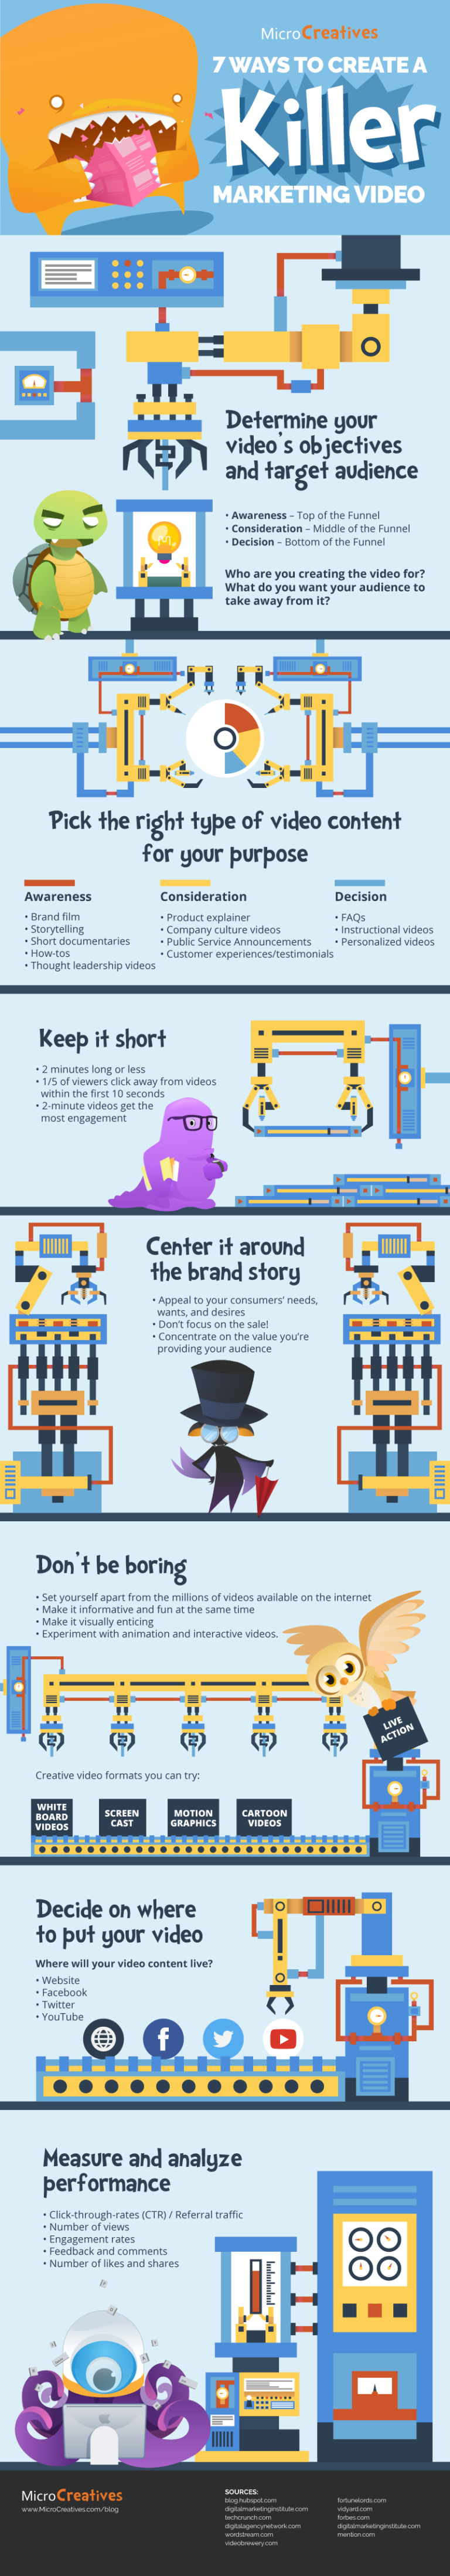 7 Ways To Create A Killer Marketing Video [Infographic] | Social Media Today